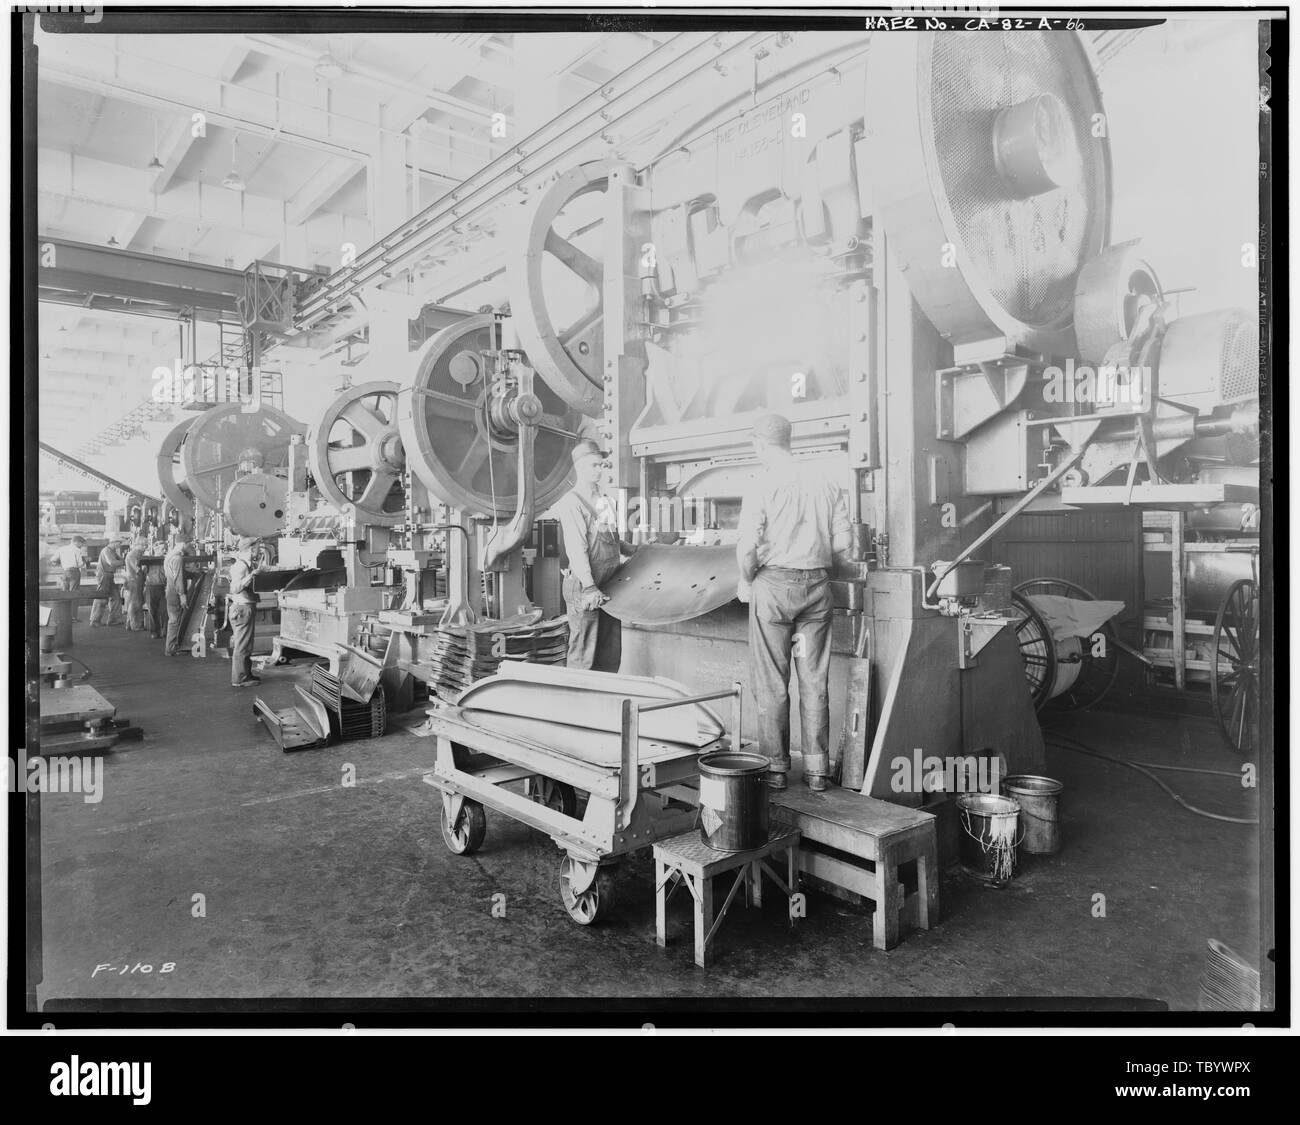 Neg. Nr. F110B, 24.April 1931, INTERIORPRESSED STAHLBAU, STAHL MASCHINEN Ford Motor Company Long Beach Montagewerk, Assembly Building, 700 Henry Ford Avenue, Long Beach, Los Angeles County, CA Stockbild